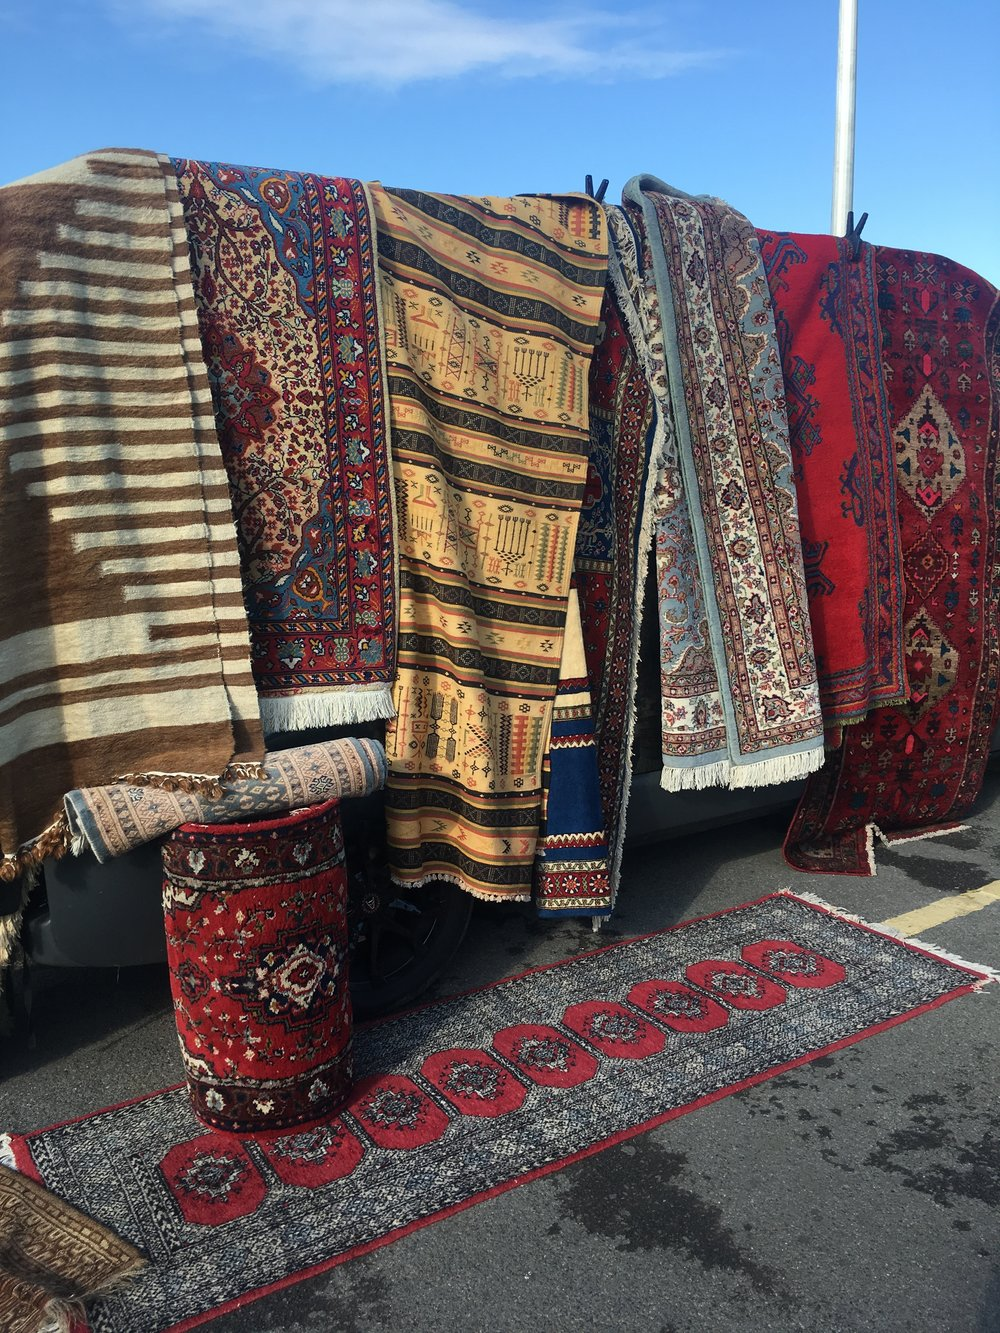 Rugs at Kempton Park's antique market